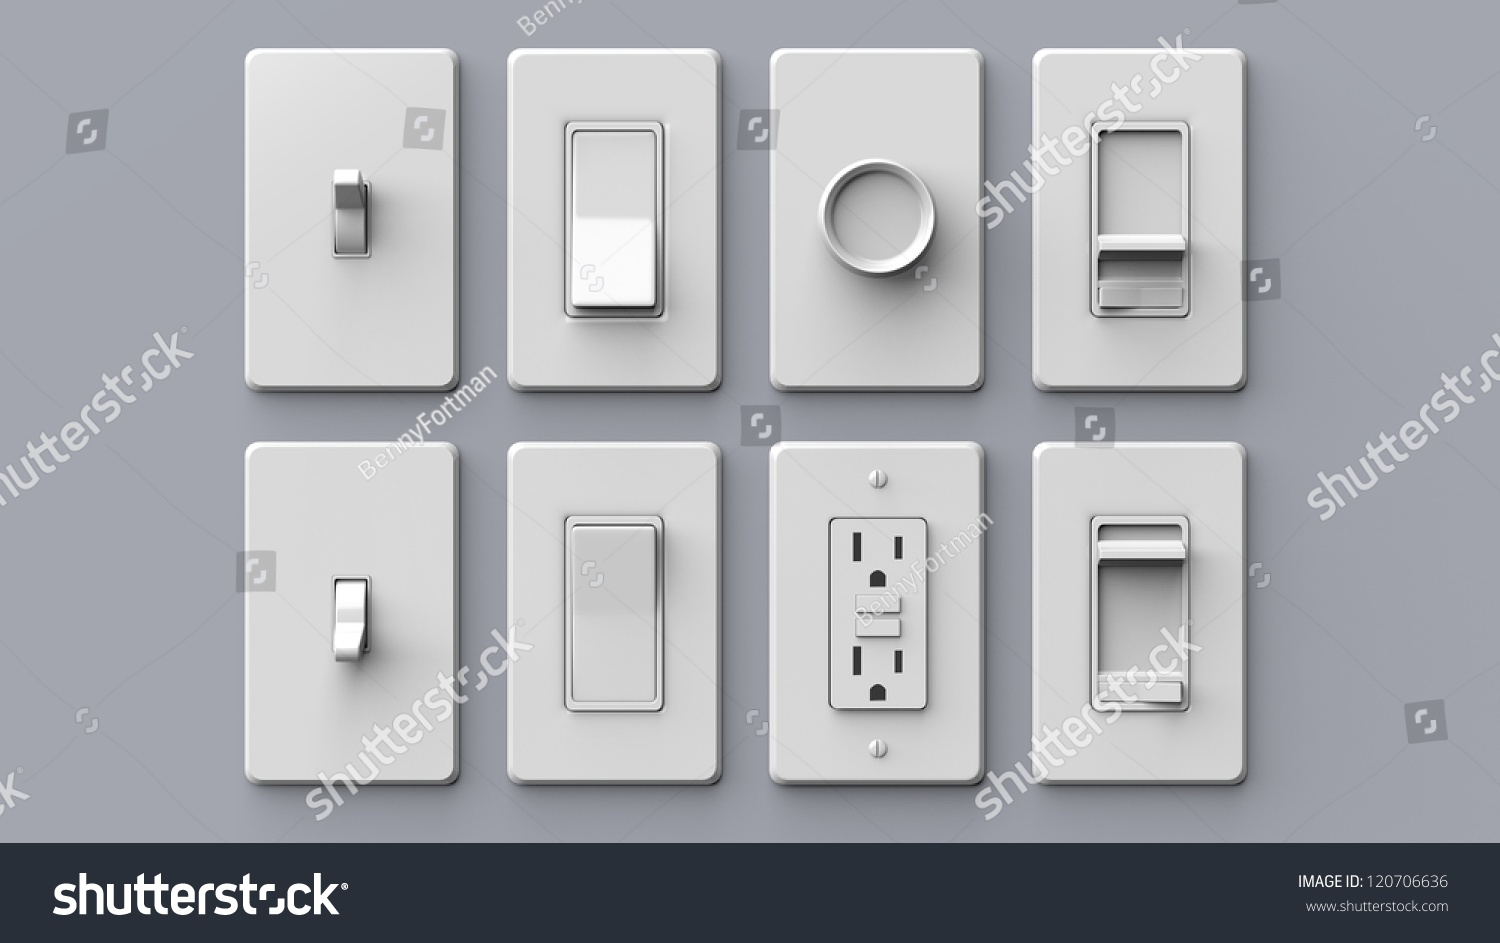 Bdsm electric switch of the west